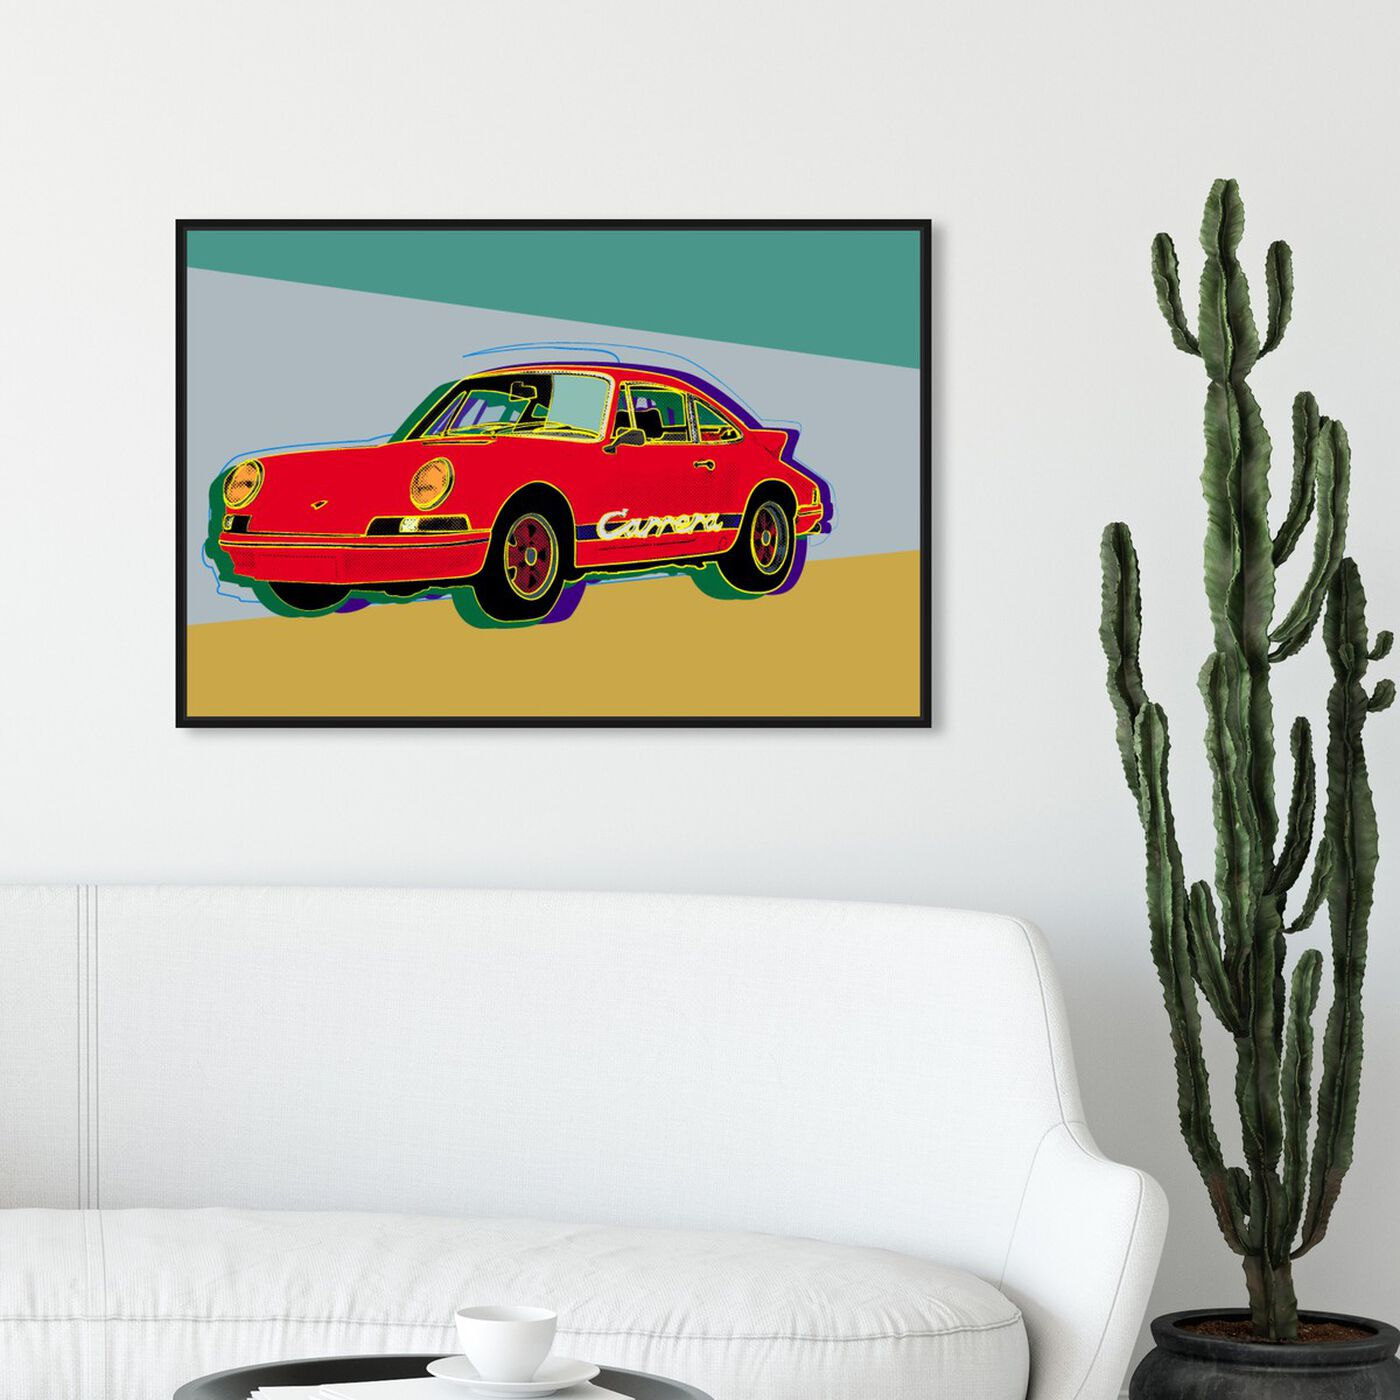 Hanging view of Red Rocket featuring transportation and automobiles art.